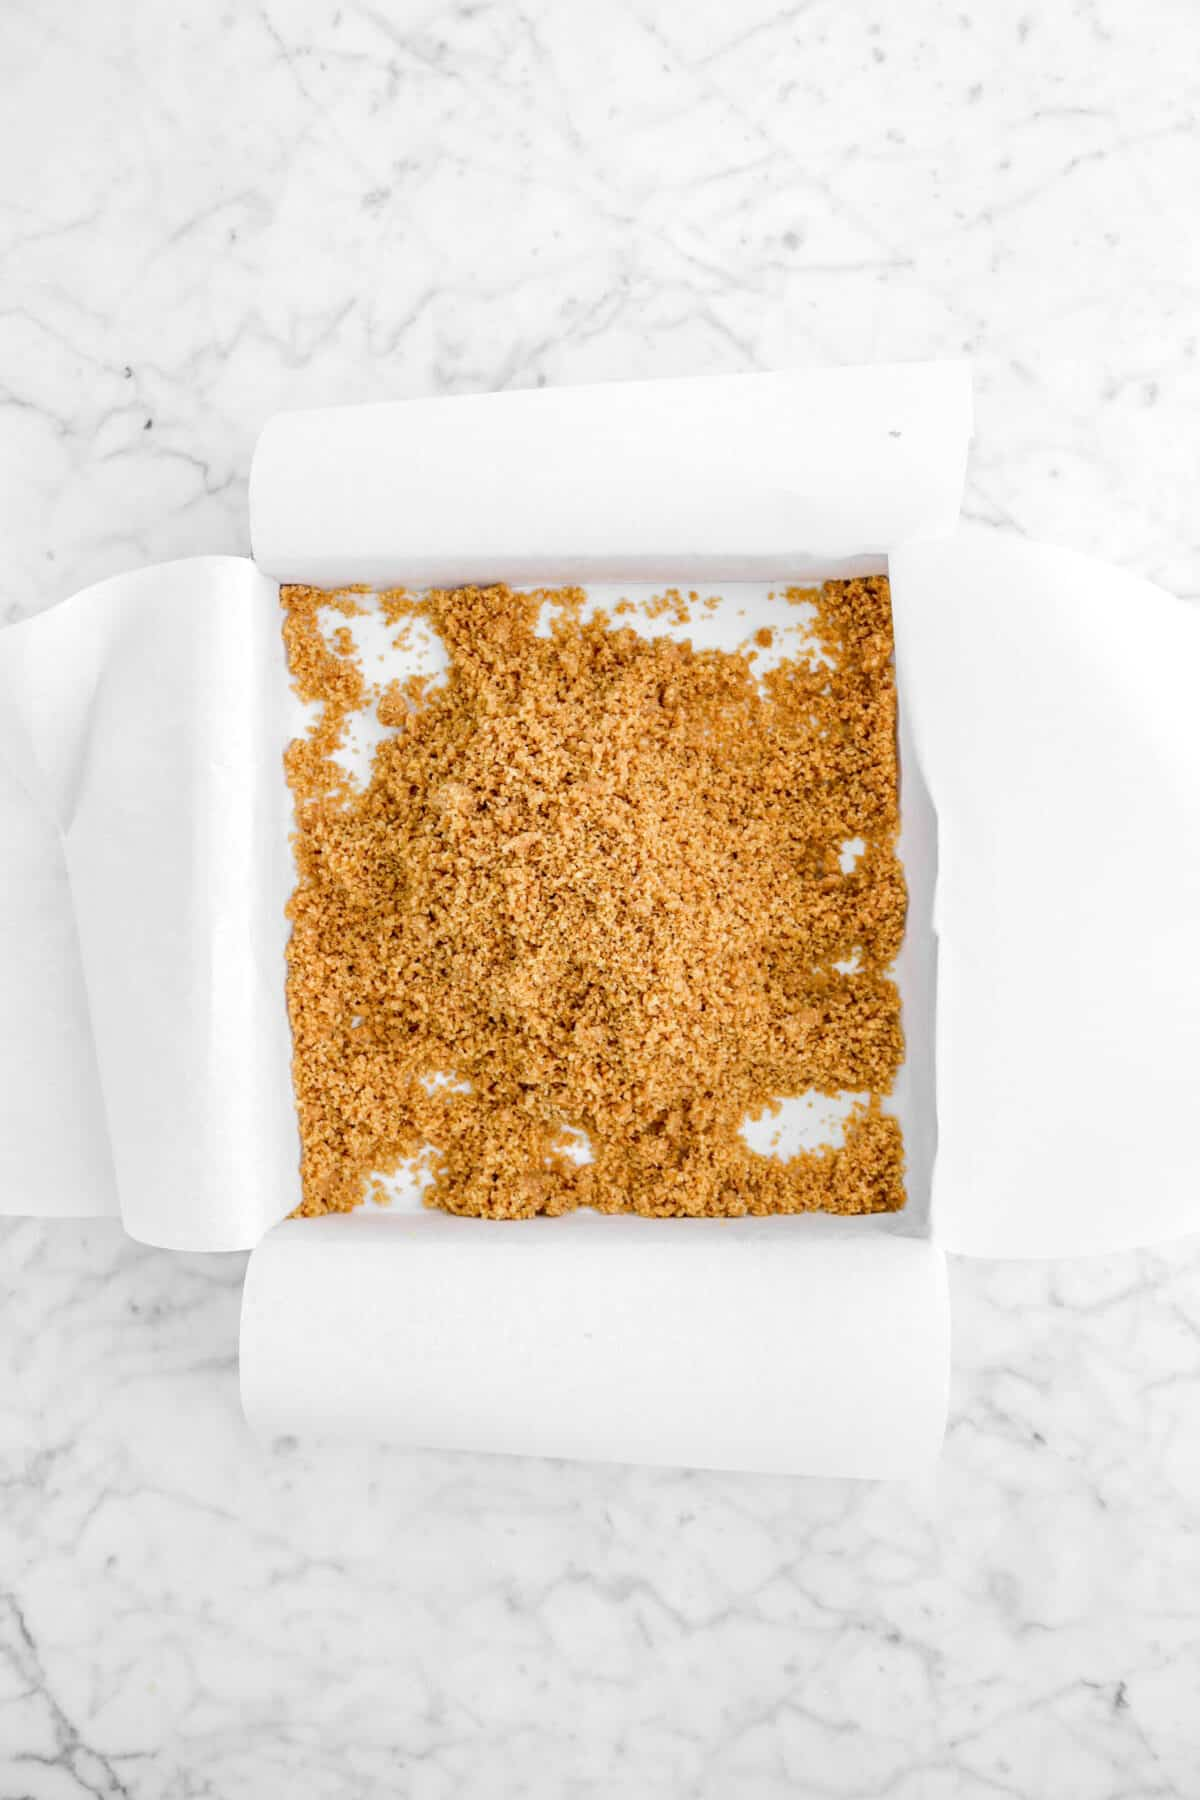 graham cracker crumbs in lined square pan